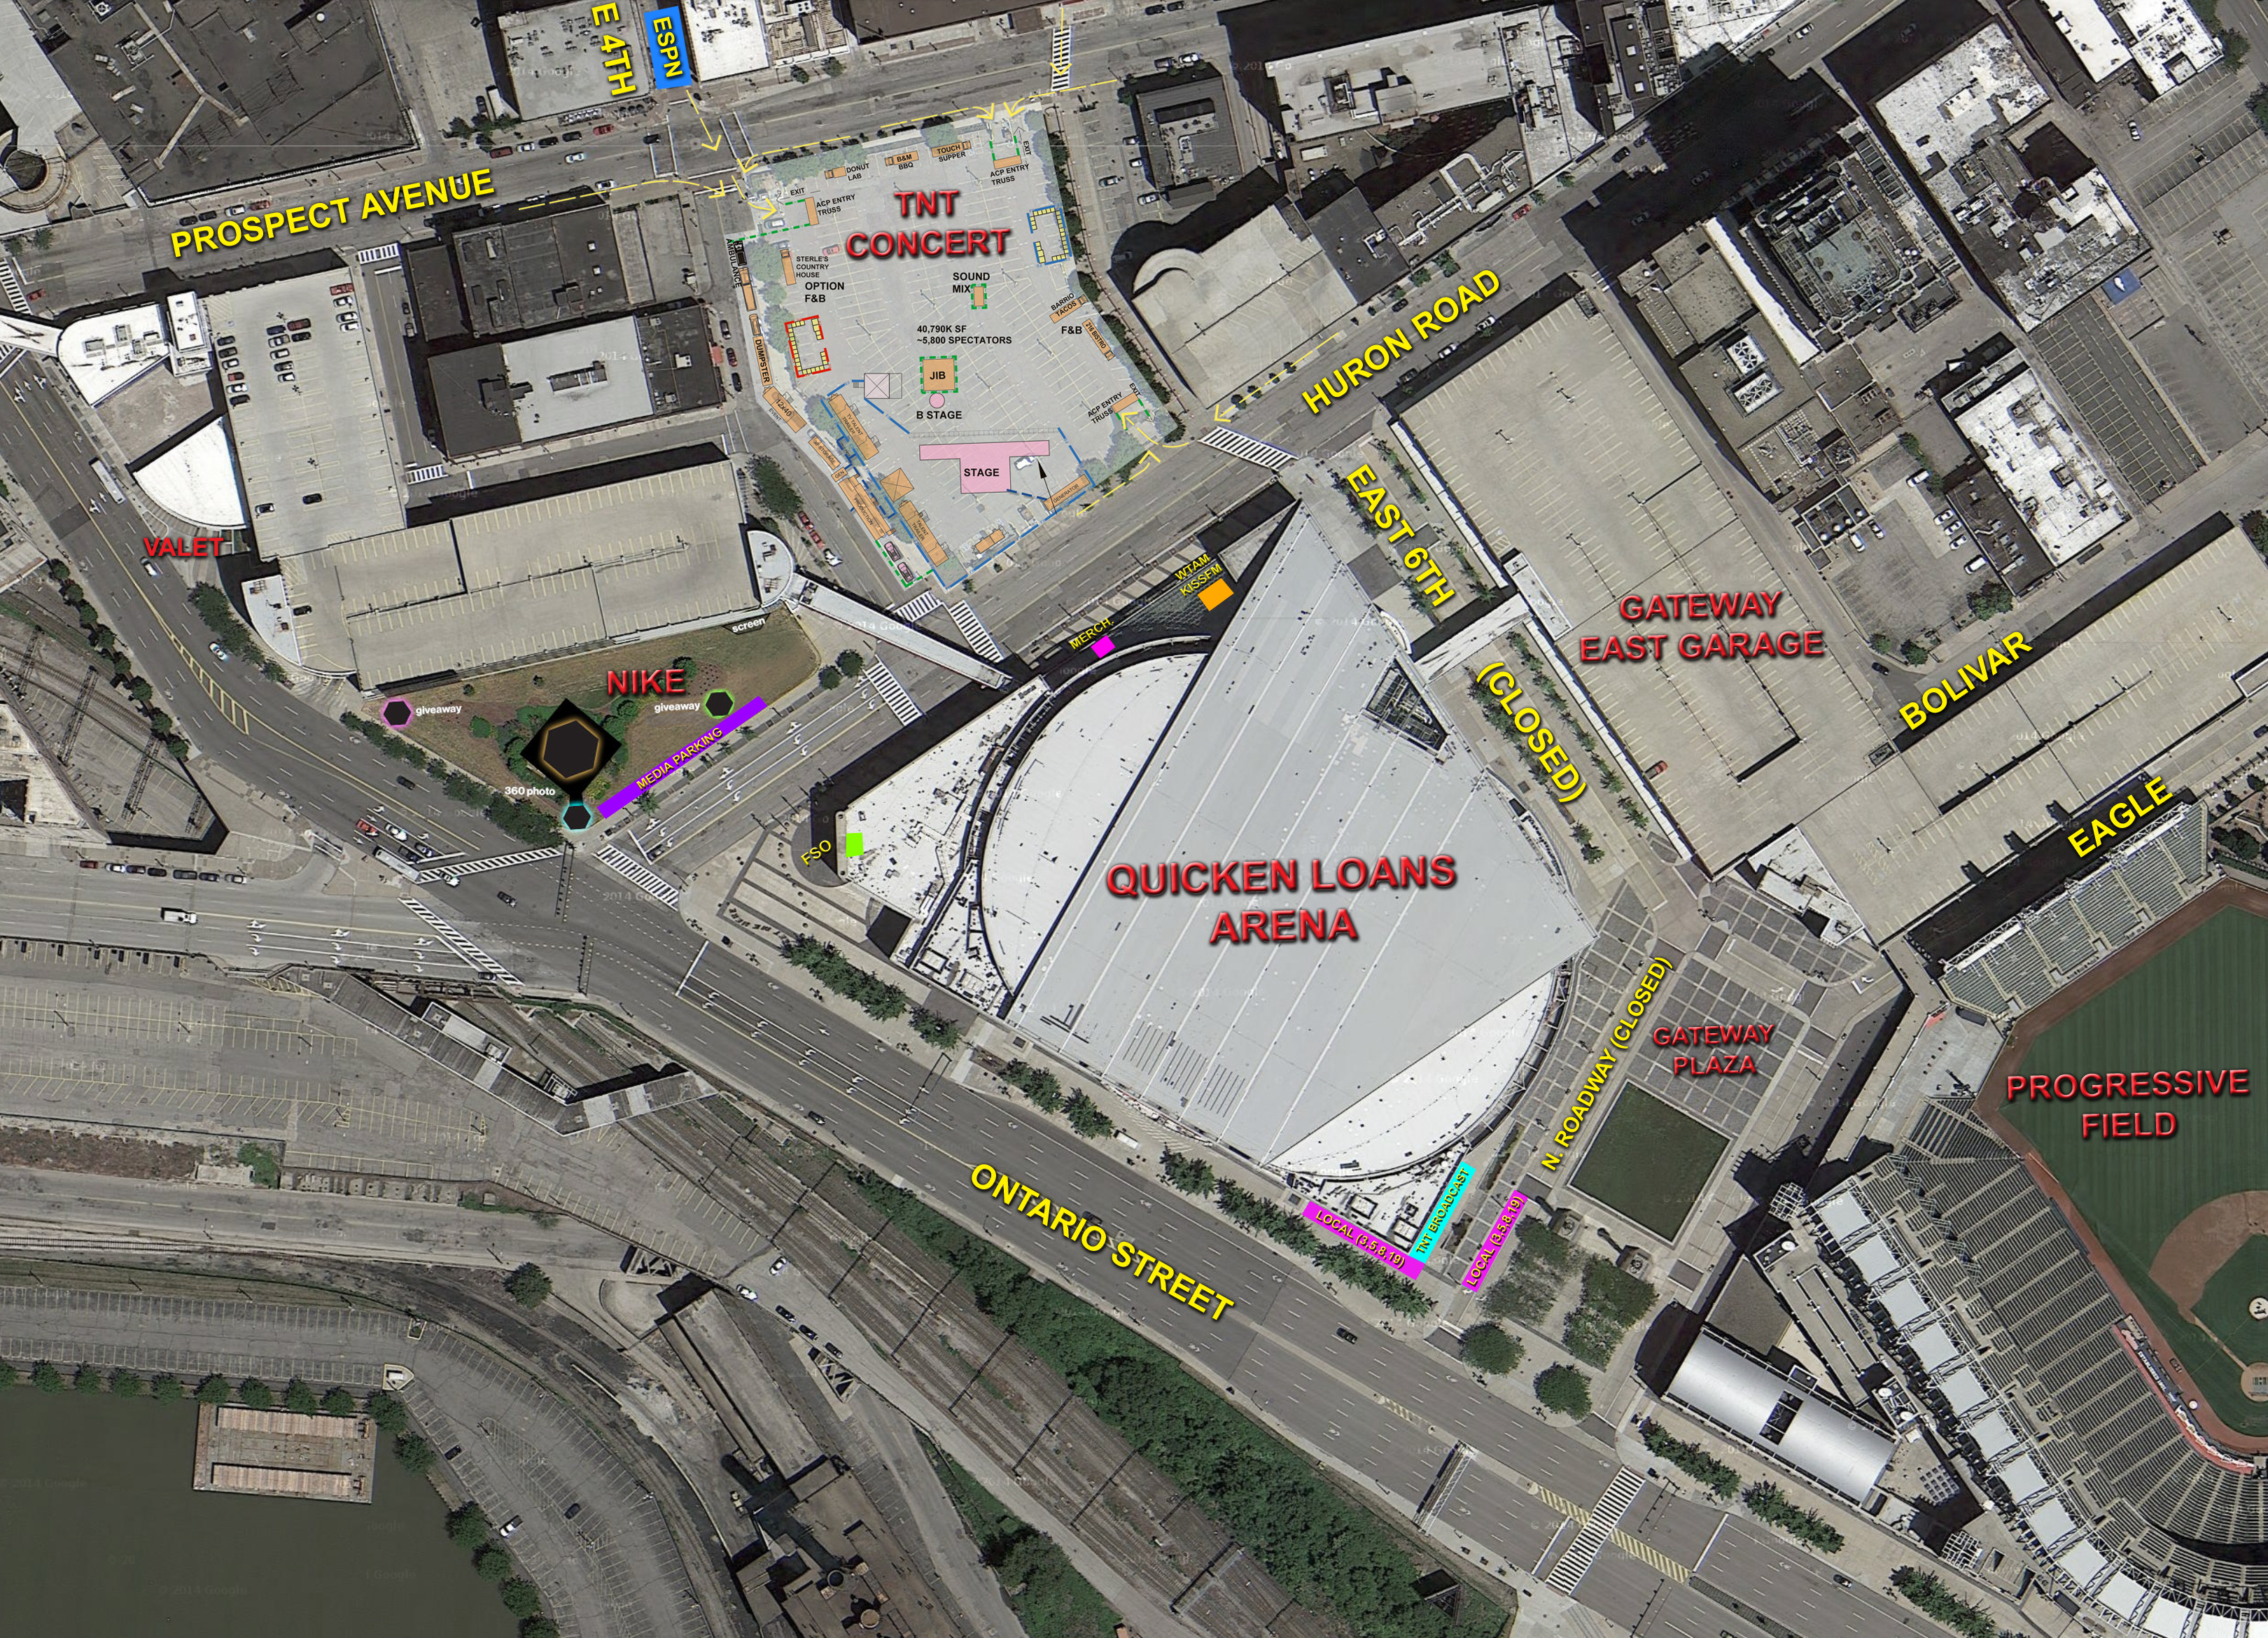 Seating charts quicken loans arena official website - What S Happening Around Town Cavs Official Watch Parties